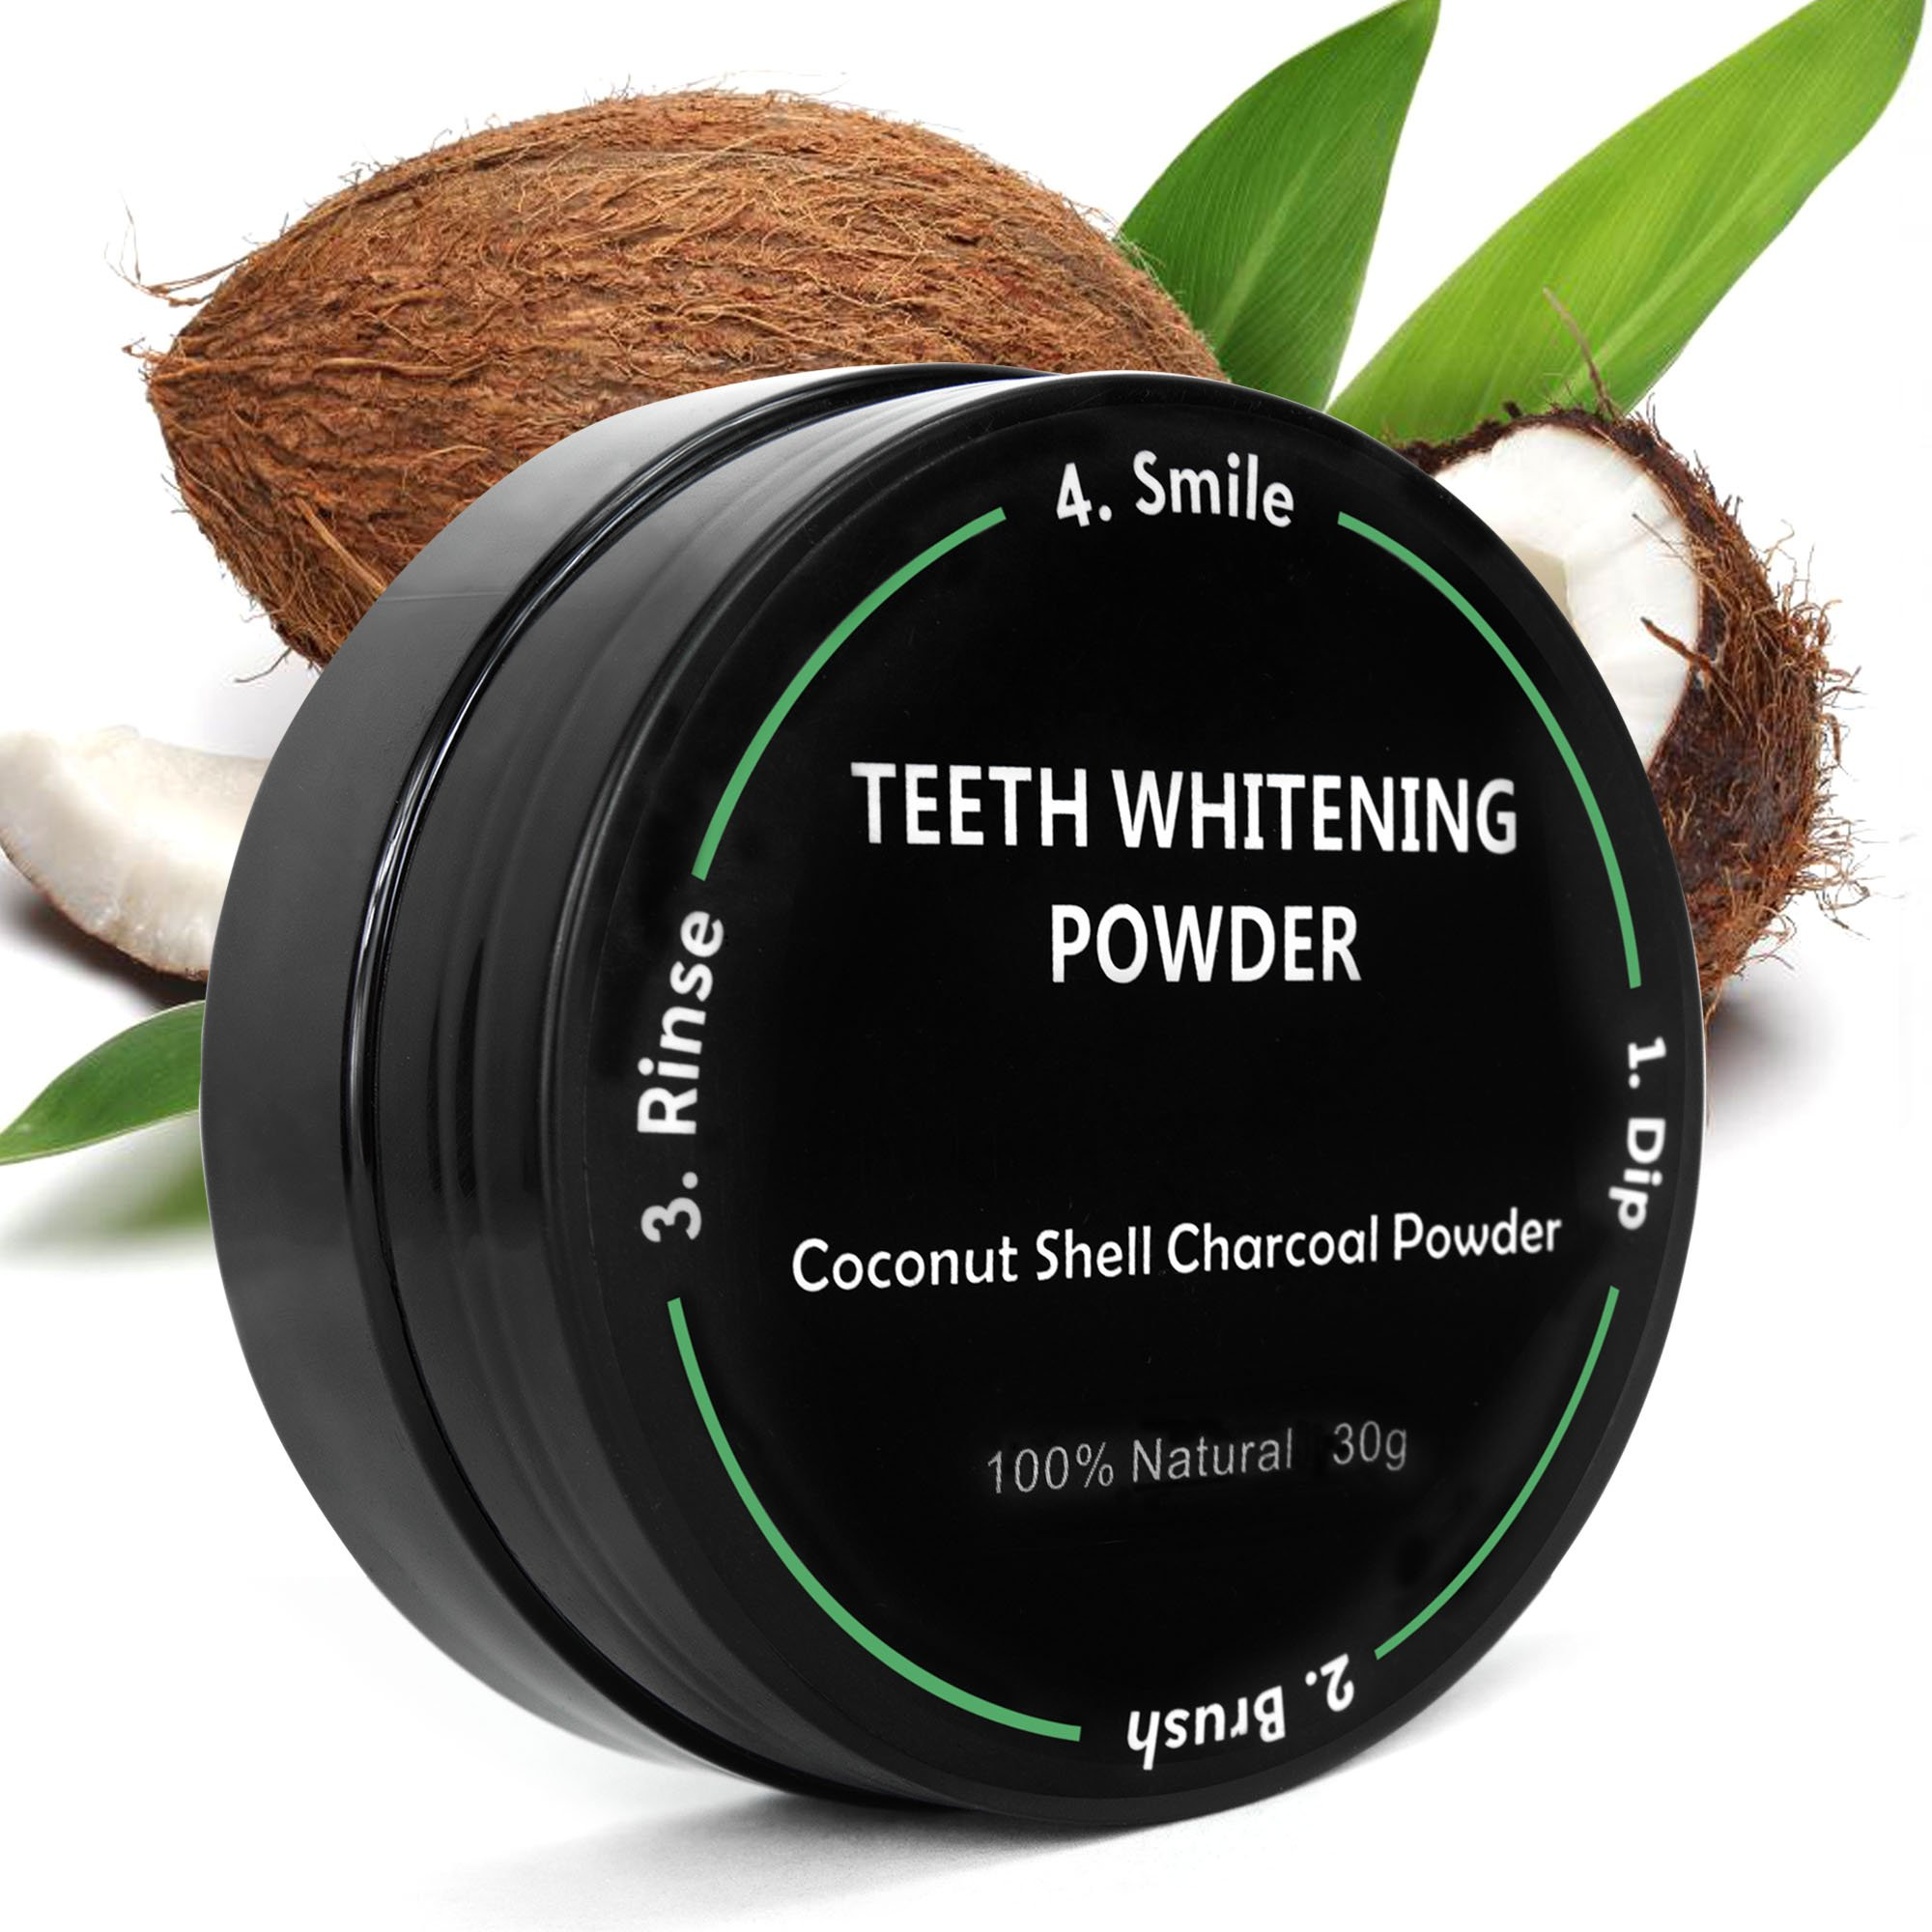 P & J Health All Natural Coconut Activated Charcoal Teeth Whitening Powder - Safe Effective Tooth Whitener Solution! (30g, All Natural)